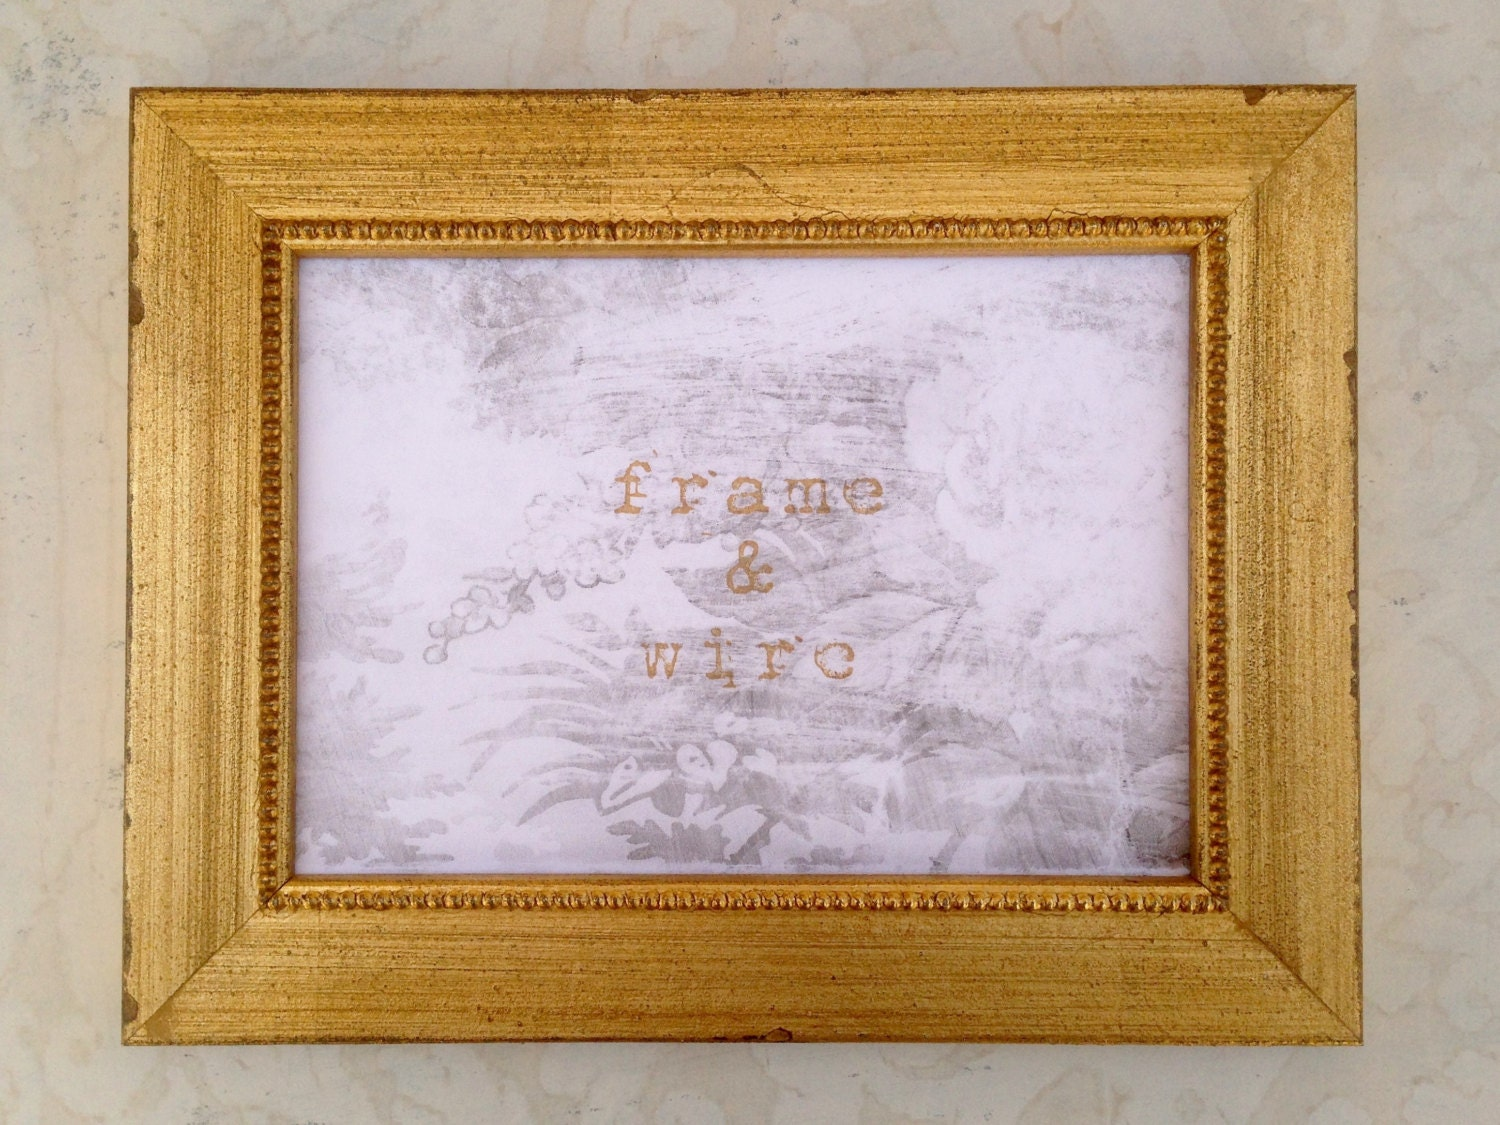 Shabby chic vintage gold picture frame 4x4 4x6 5x7 8x8 for American frame coupon